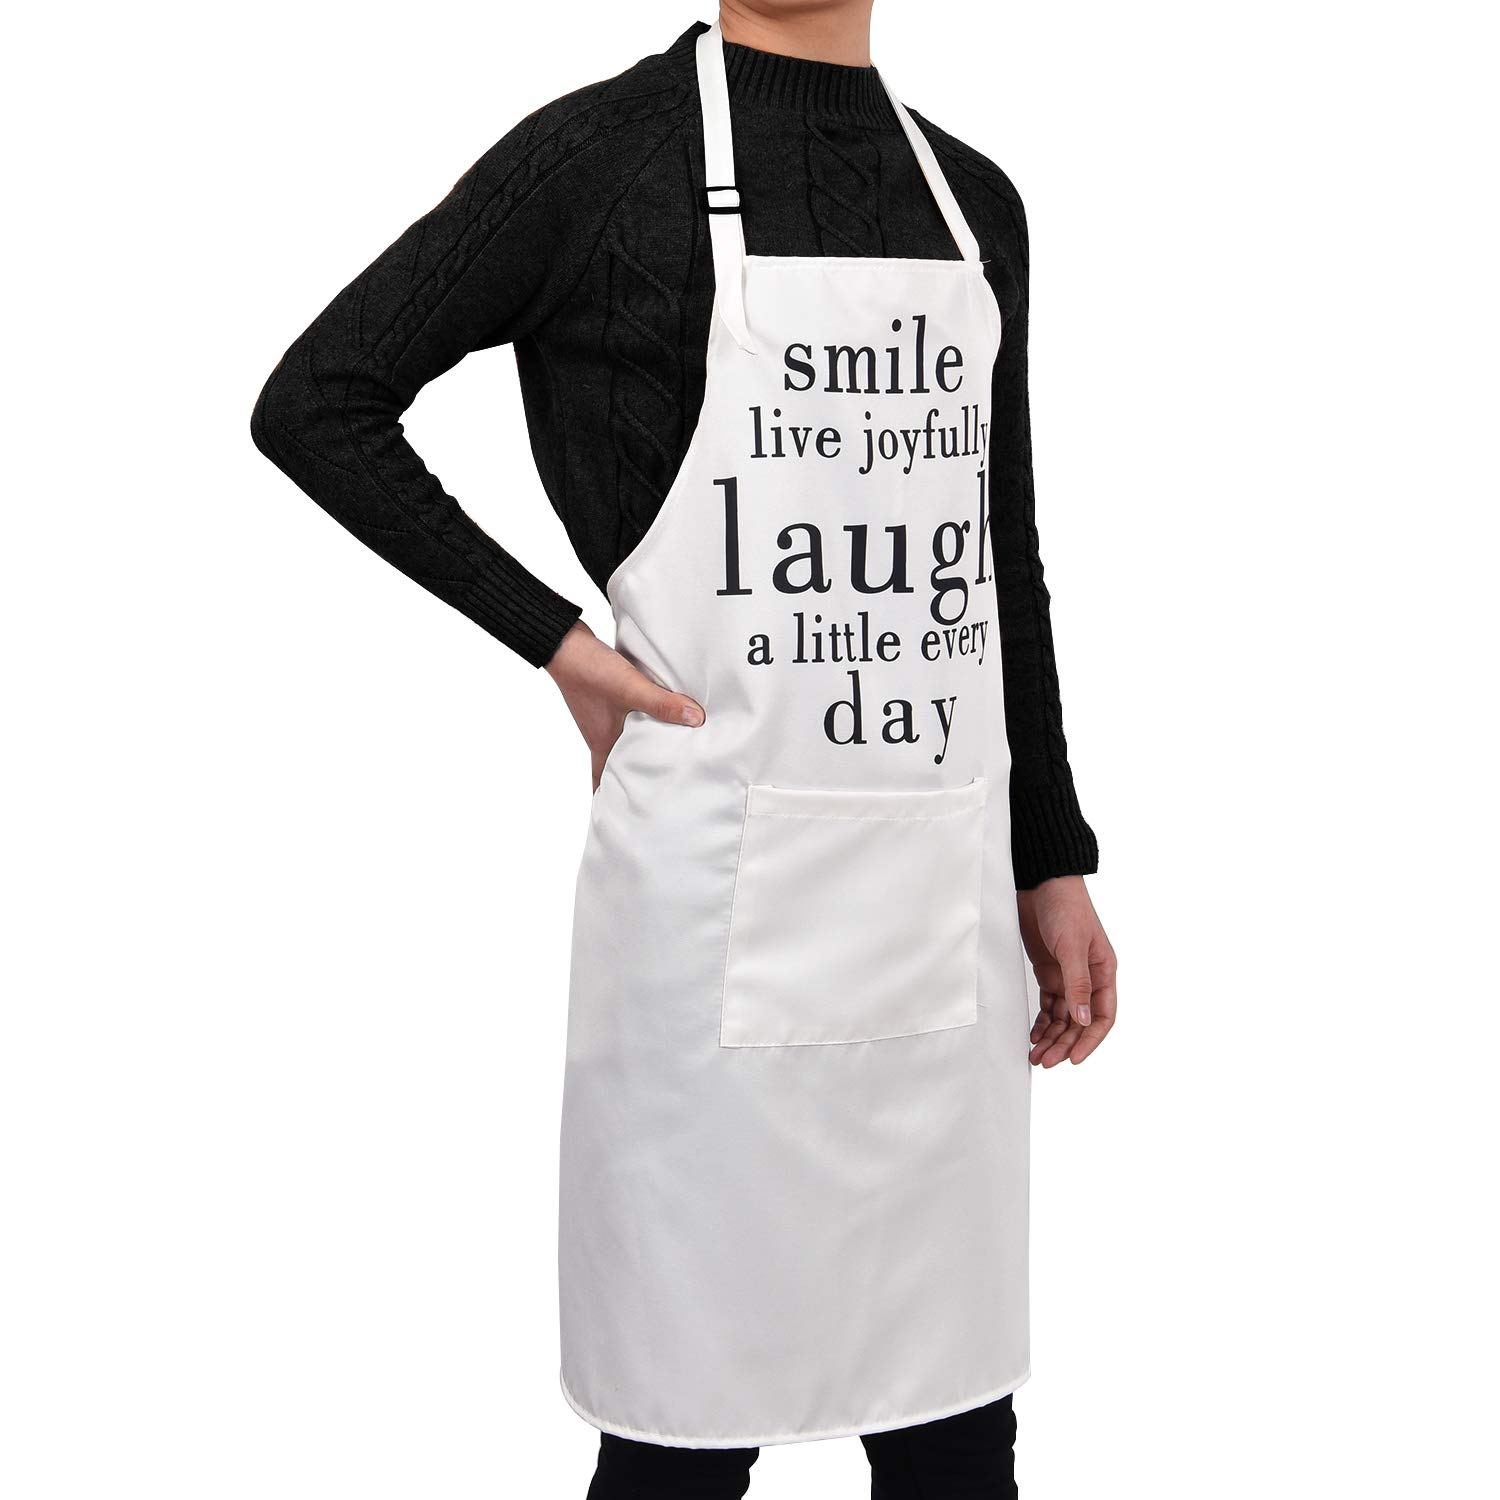 Claswcalor Flowers on Bicycles Cooking Aprons with Pocket Life is a Beautiful Ride Kitchen Aprons Waterproof Adjustable Baking Aprons for Women